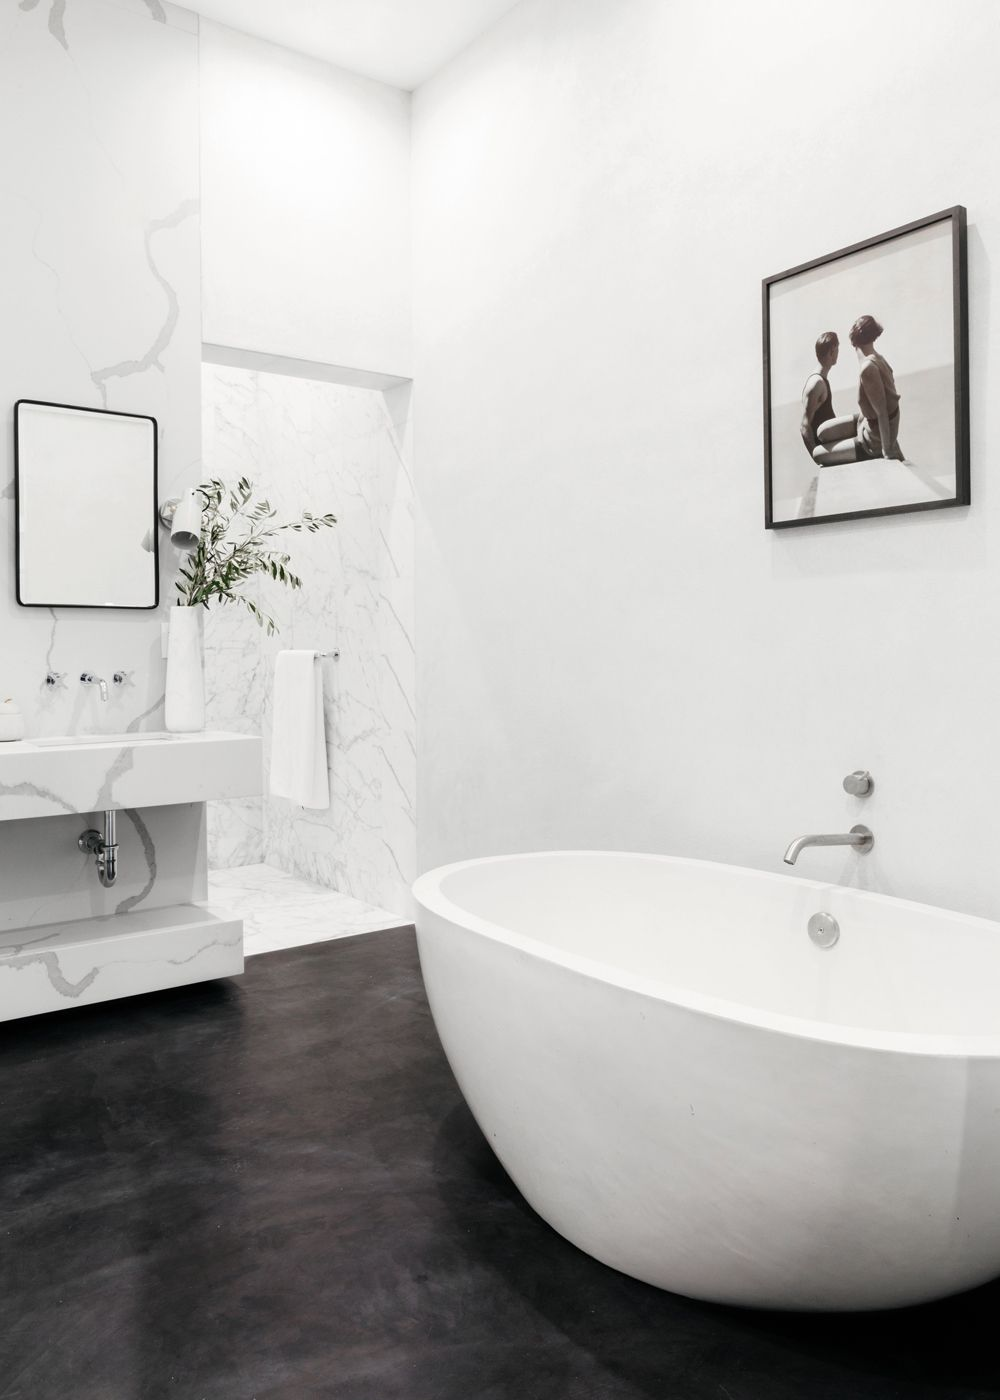 15 Simple Ways to Make Your Bathroom Instagrammable